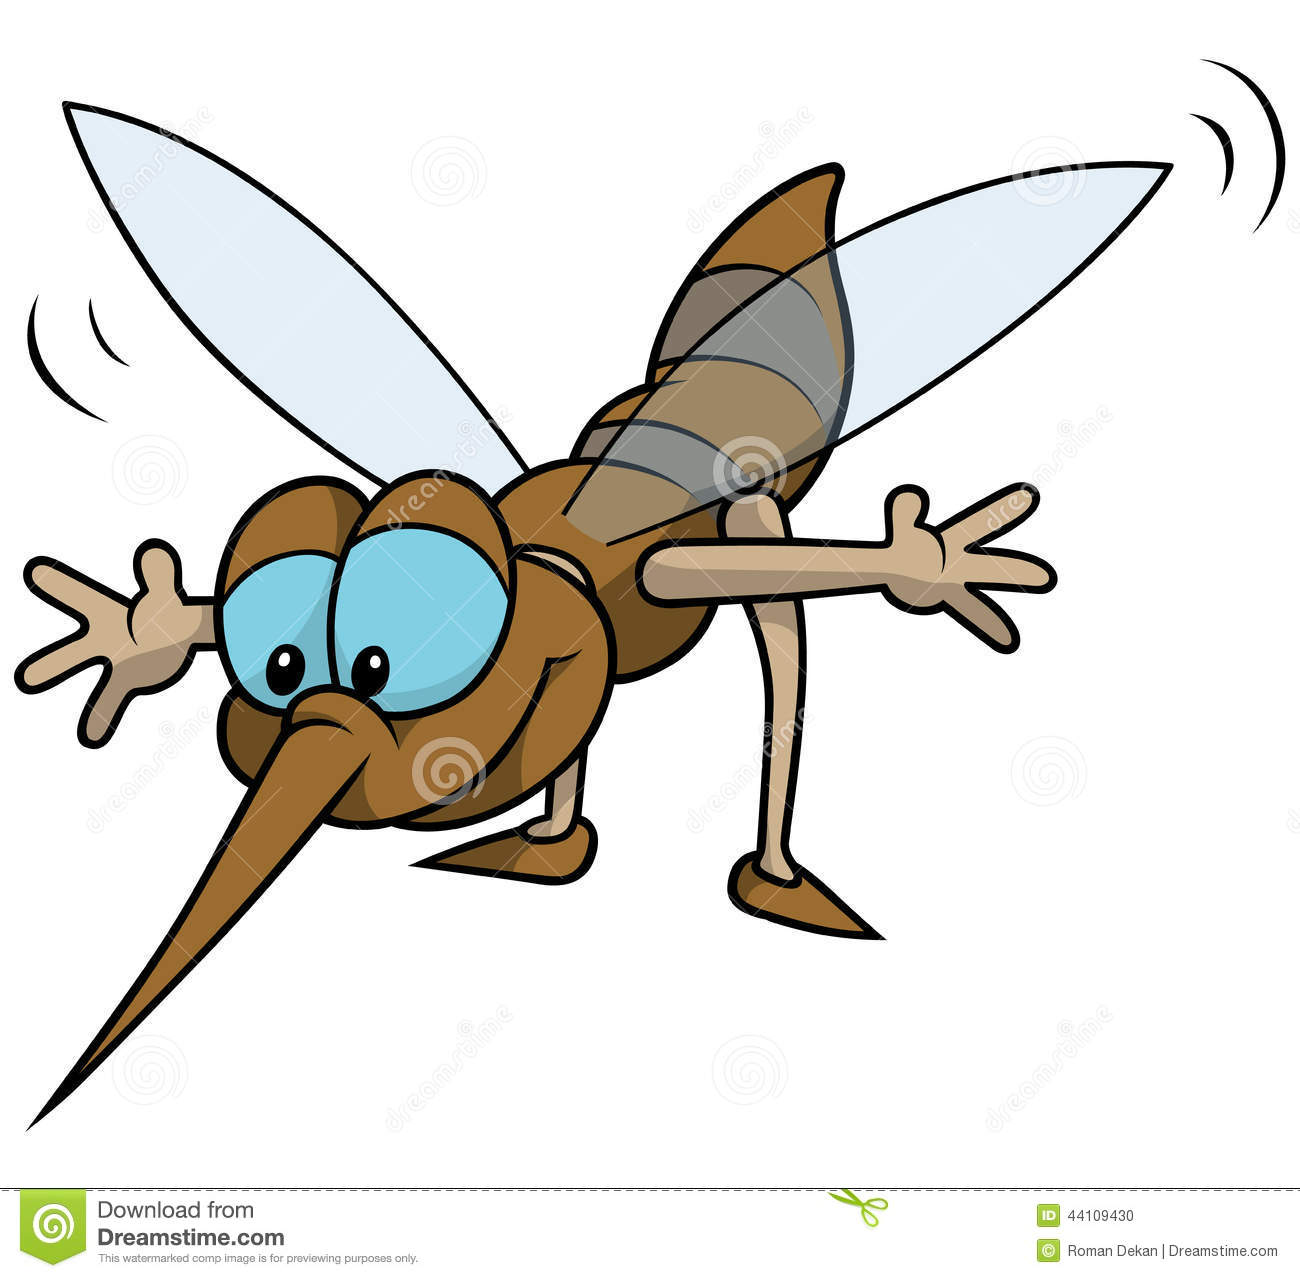 Mosquito Animation Clipart - Clipart Kid